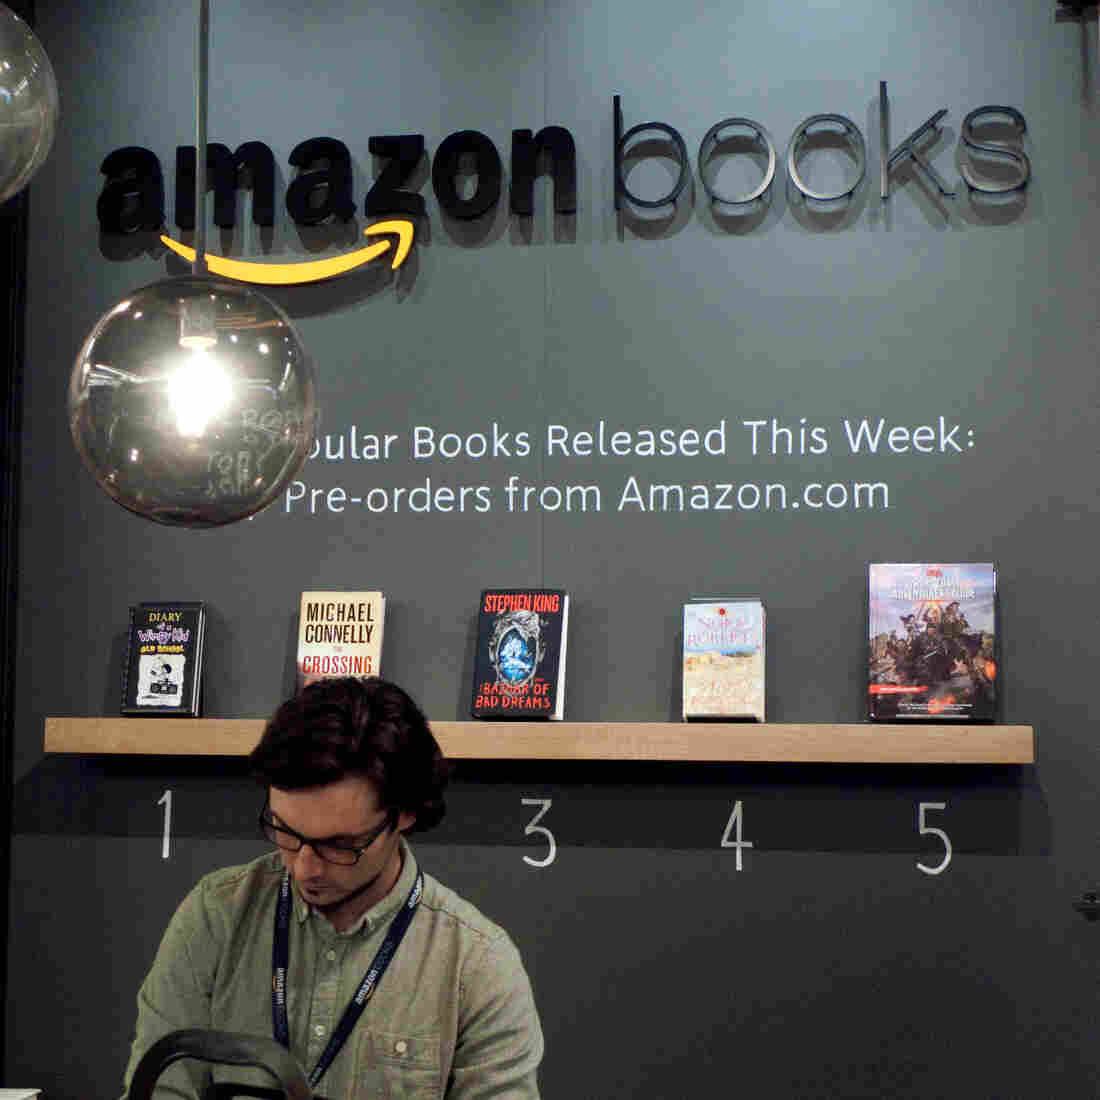 A clerk works the counter at Amazon Books, the retailer's first brick-and-mortar store that opened in Seattle Tuesday.